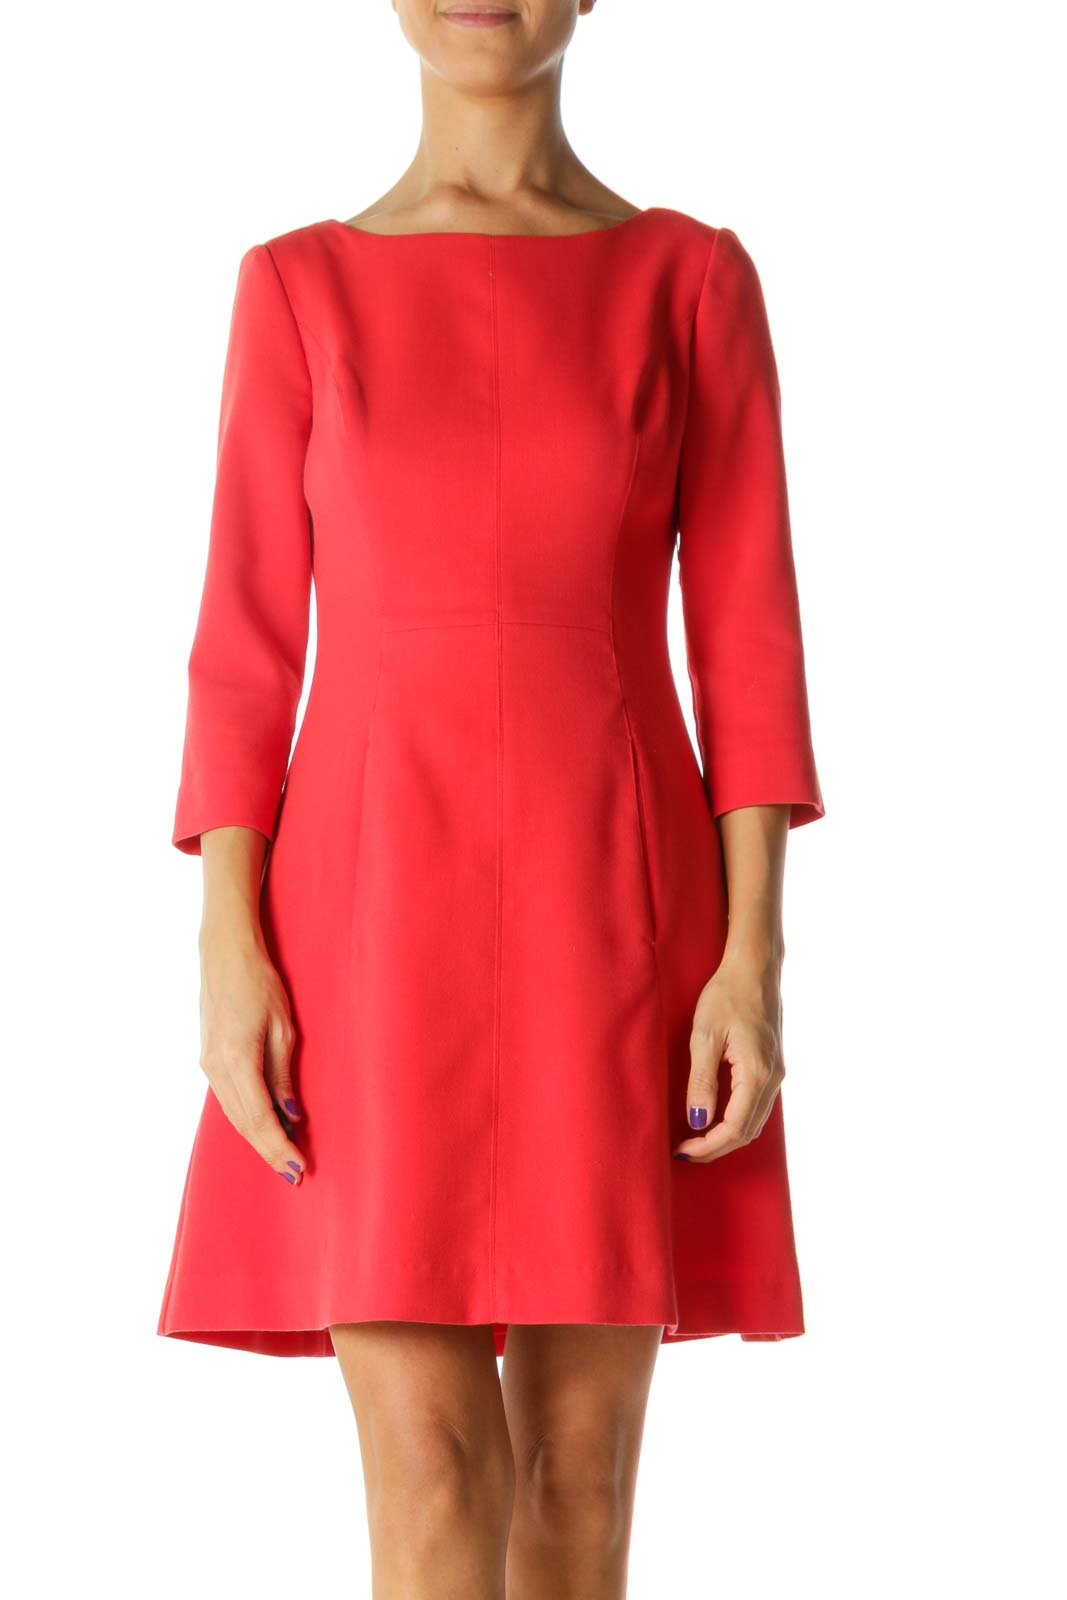 Coral Pink Round Neck Long Sleeve Pocketed Zippered Dress